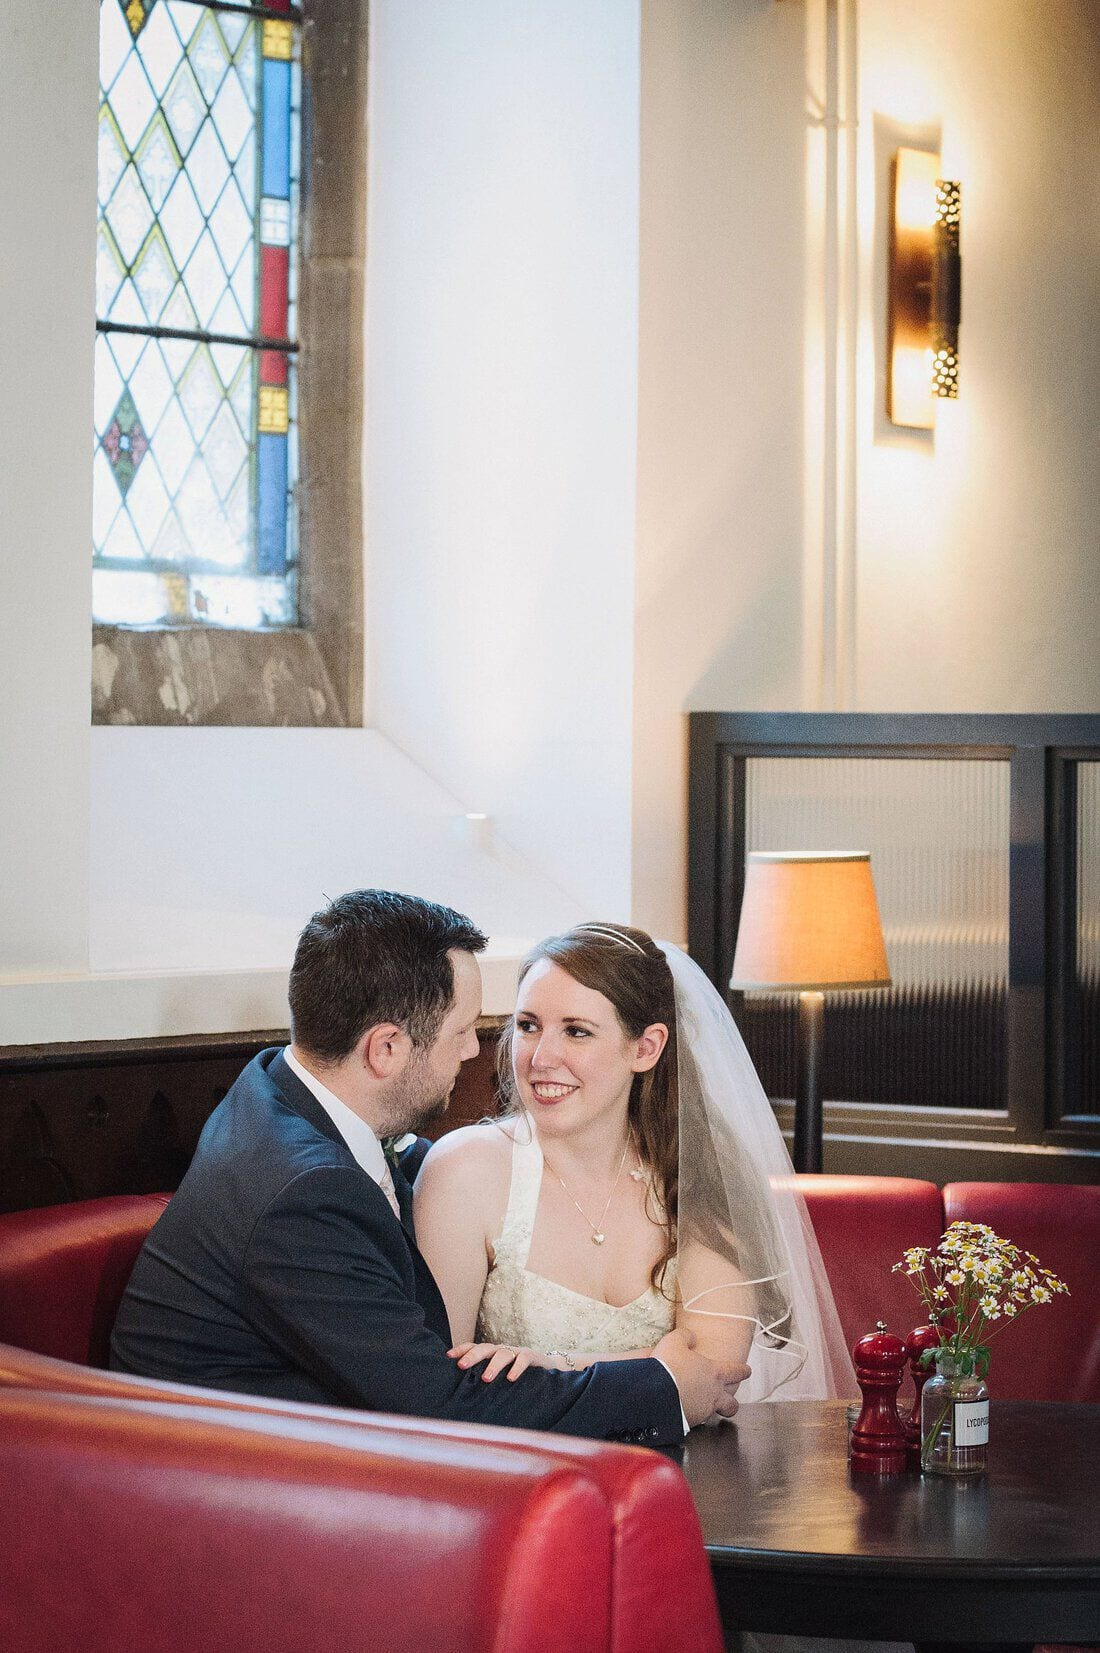 Your local guildford godalming wedding photographer for Local wedding photographers